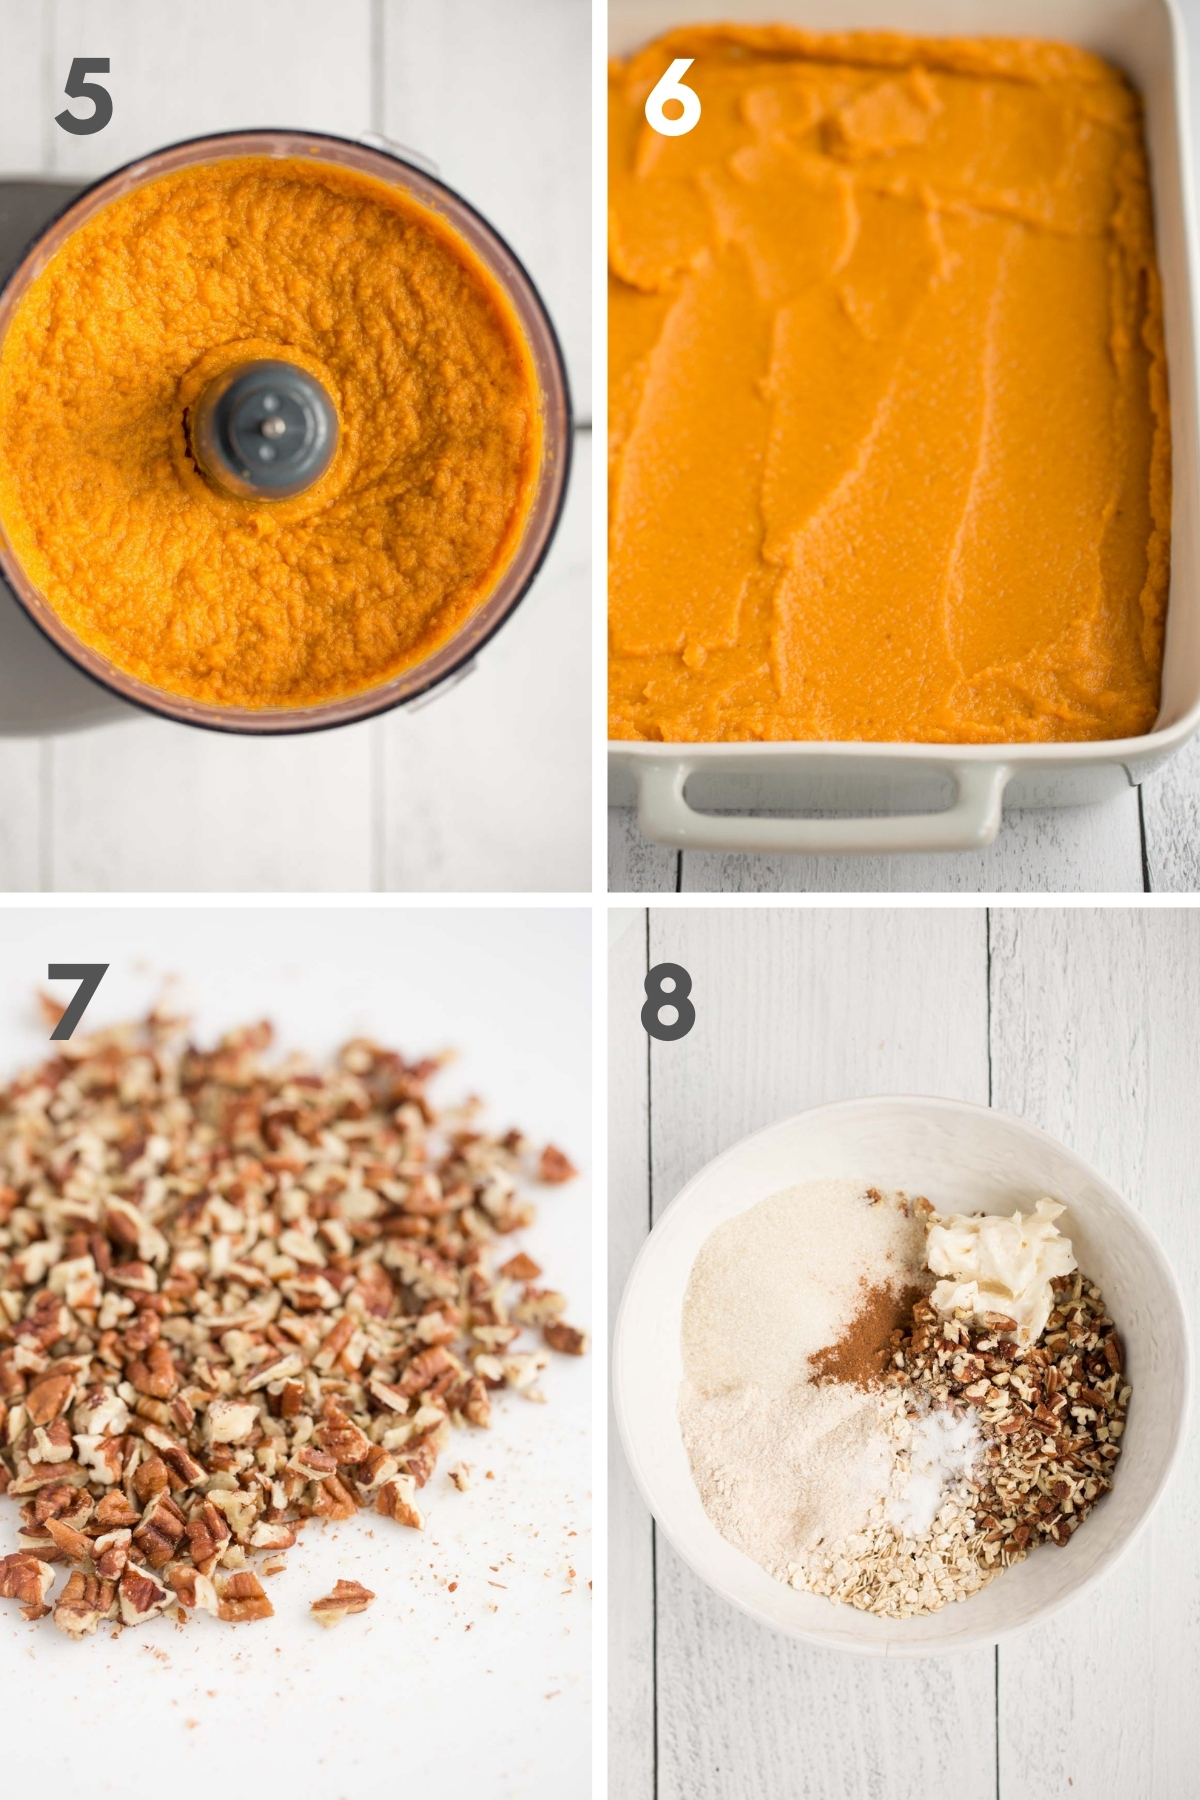 steps 5-8 of making vegan sweet potato casserole--blended sweet potato mixture in food processor and in gray casserole dish; chopped pecans on white cutting board, and dry ingredients for crumble topping in white bowl.